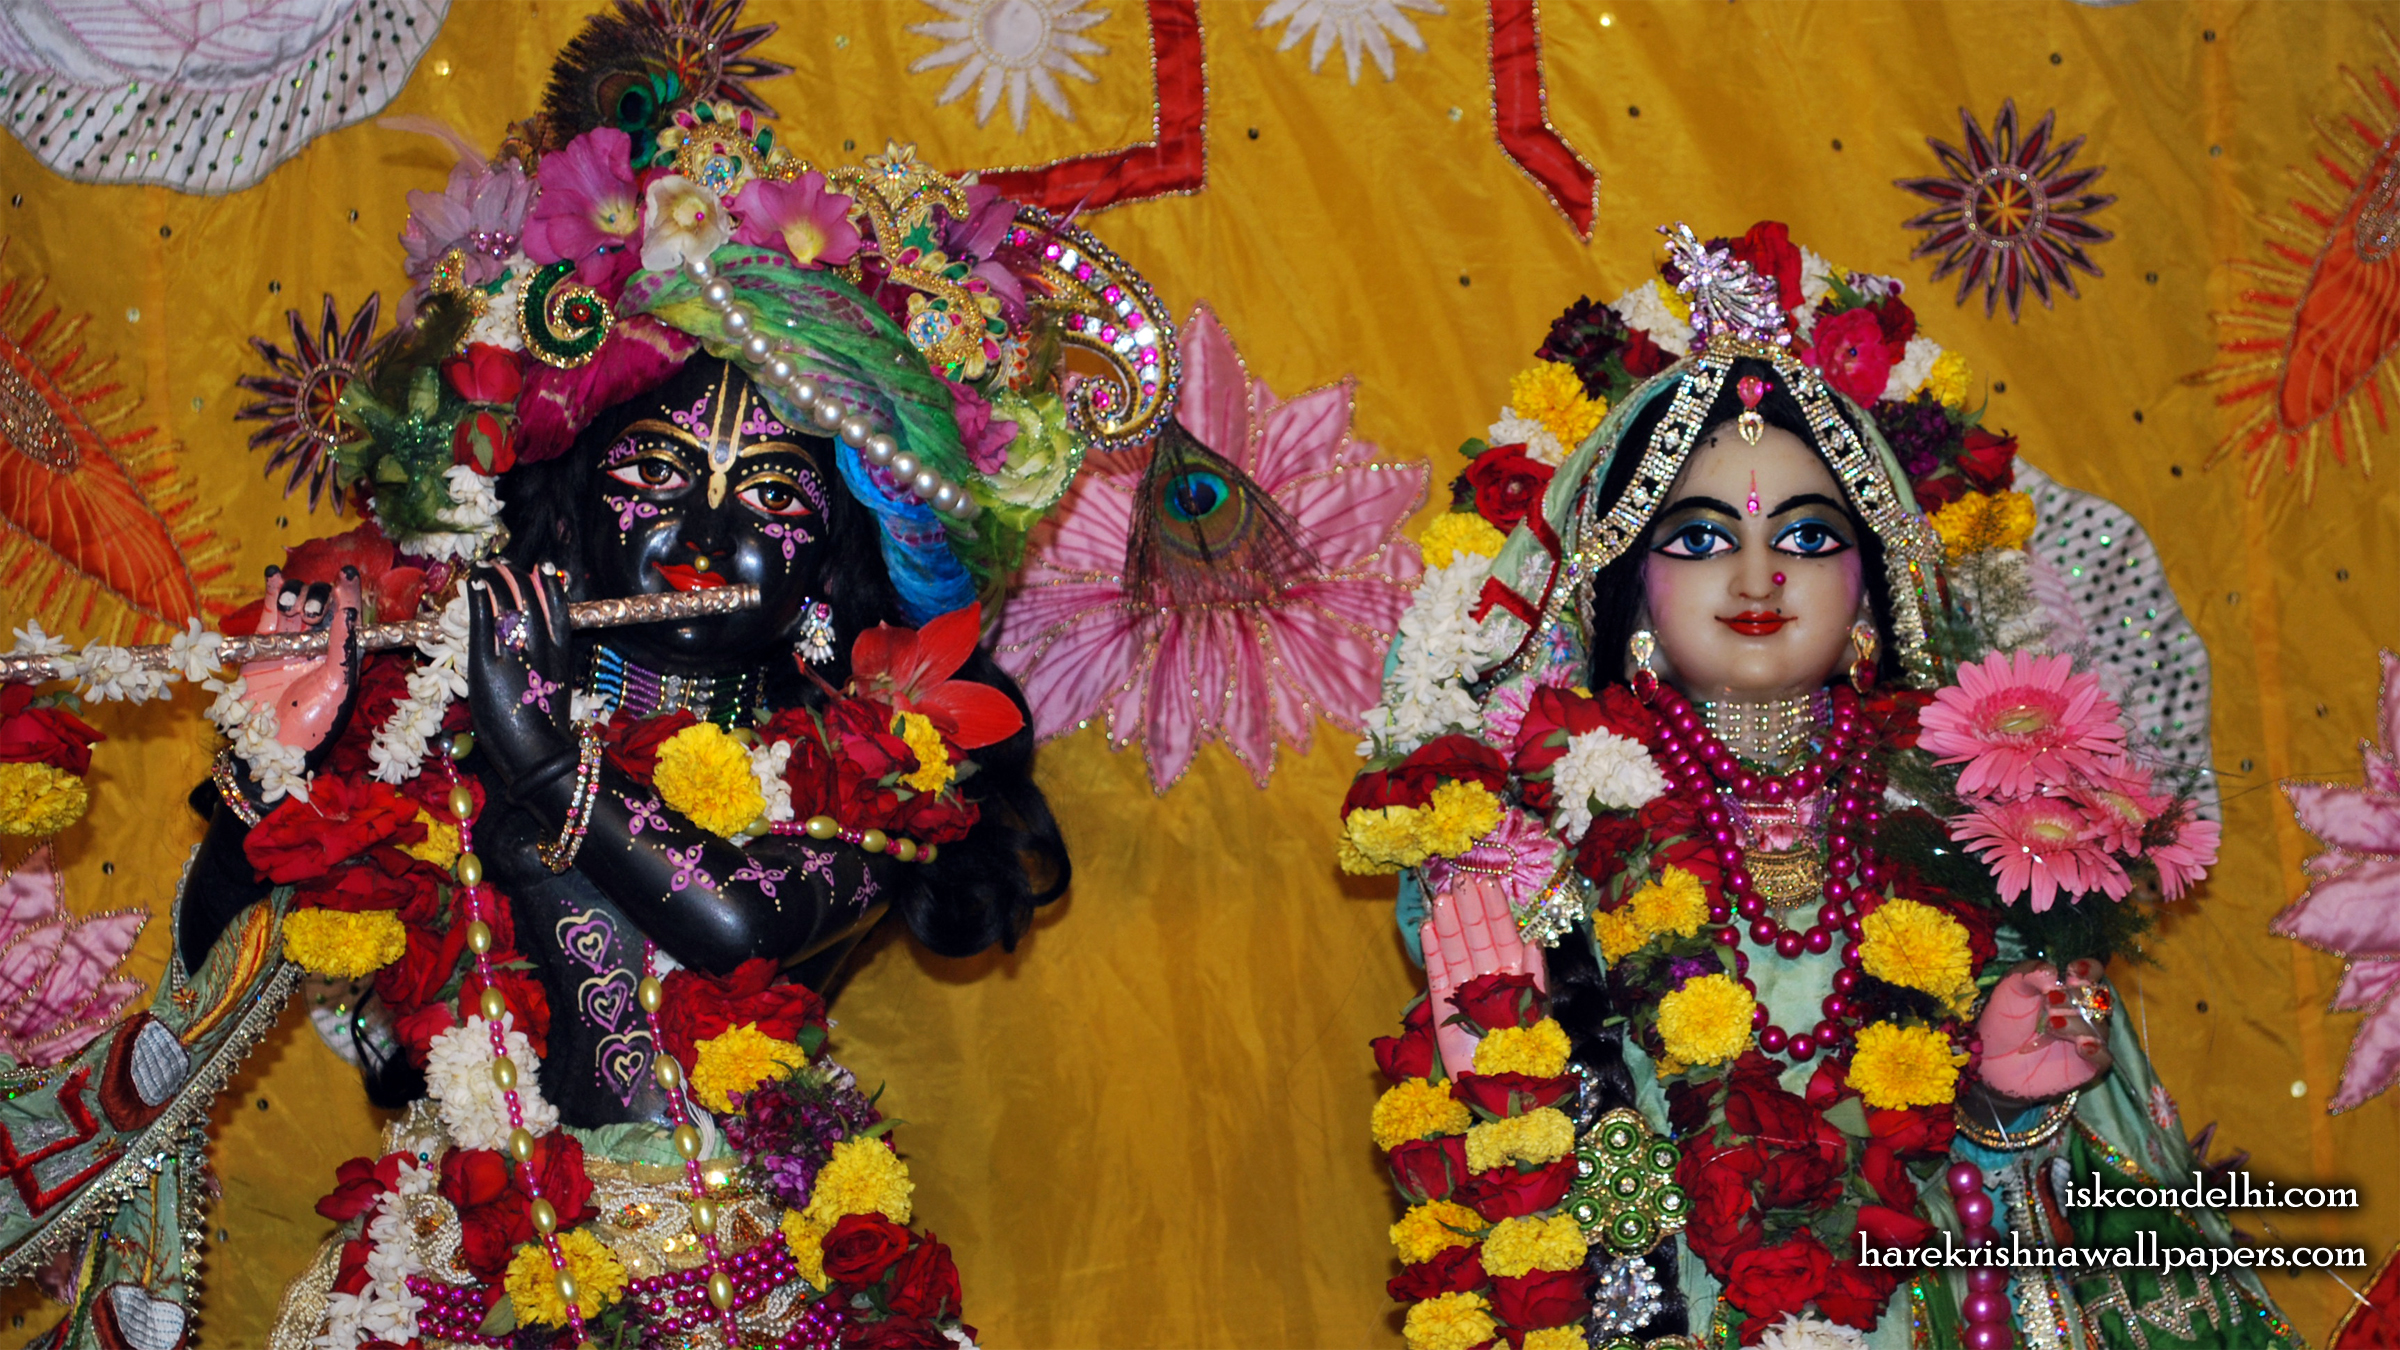 Sri Sri Radha Parthasarathi Close up Wallpaper (005) Size 2400x1350 Download